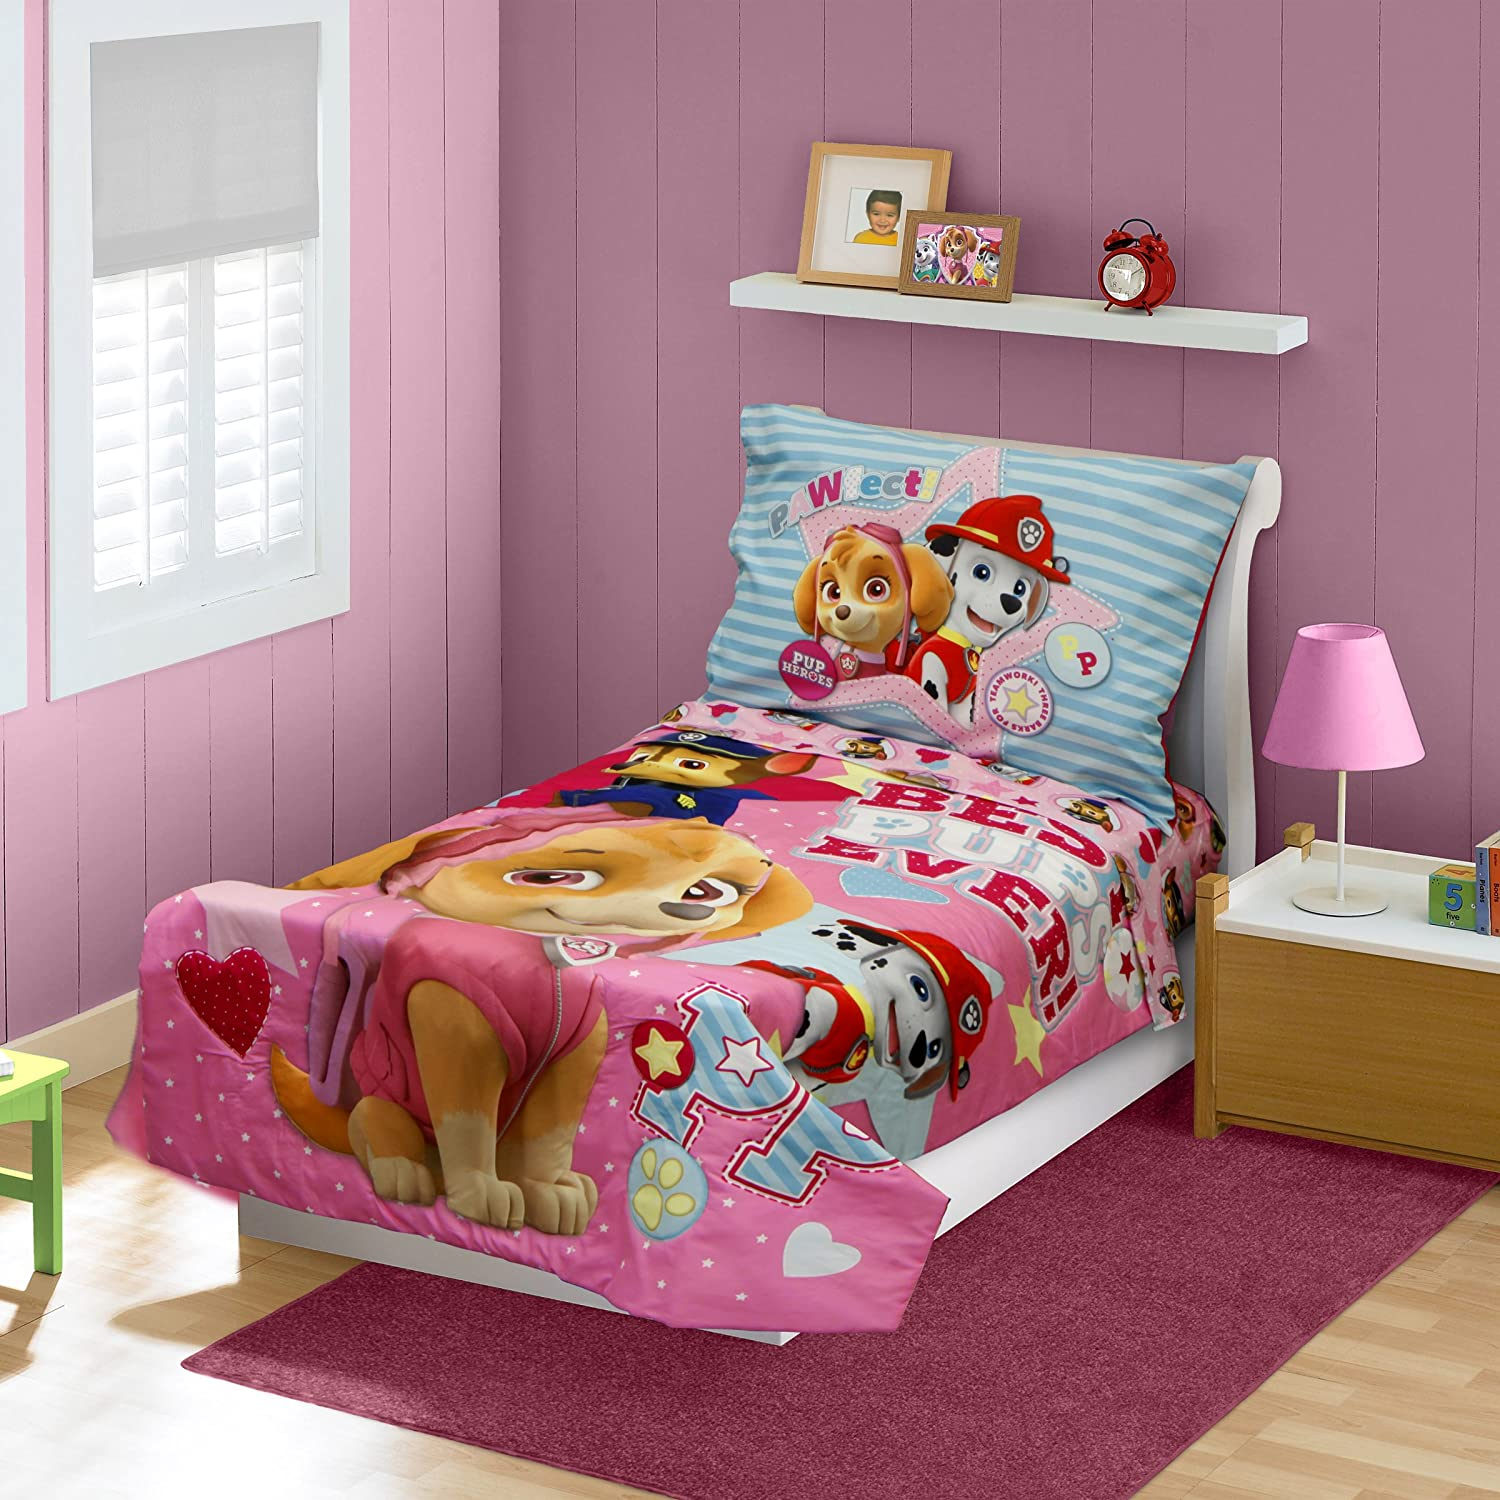 Shop our best selection of Toddler Beds to reflect your style and inspire their imagination. Find the perfect children's furniture, decor, accessories & toys at Hayneedle, where you can buy online while you explore our room designs and curated looks for tips, ideas & inspiration to help you along the way.